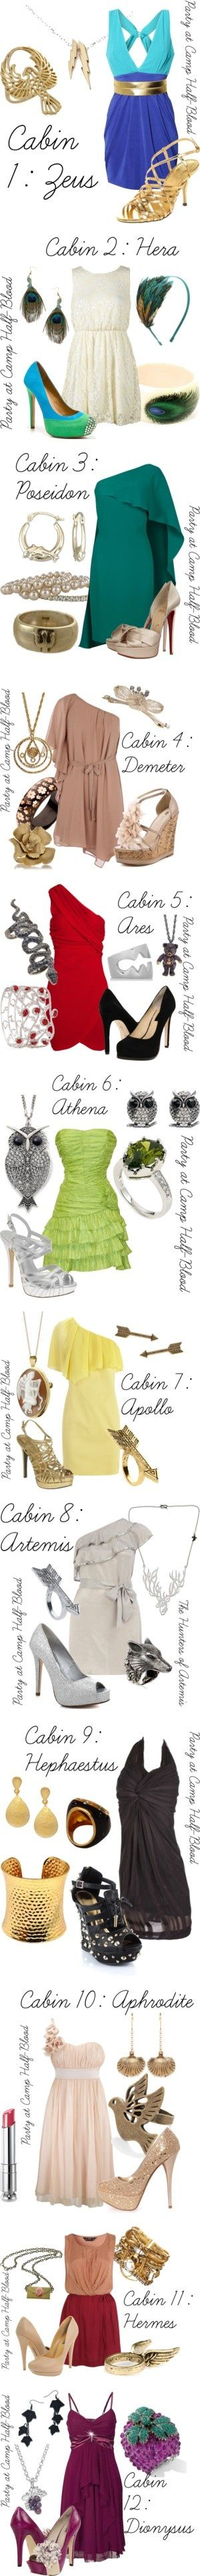 Percy Jackson: Cabins by ellalea liked on Polyvore find more women fashion on misspool.com: